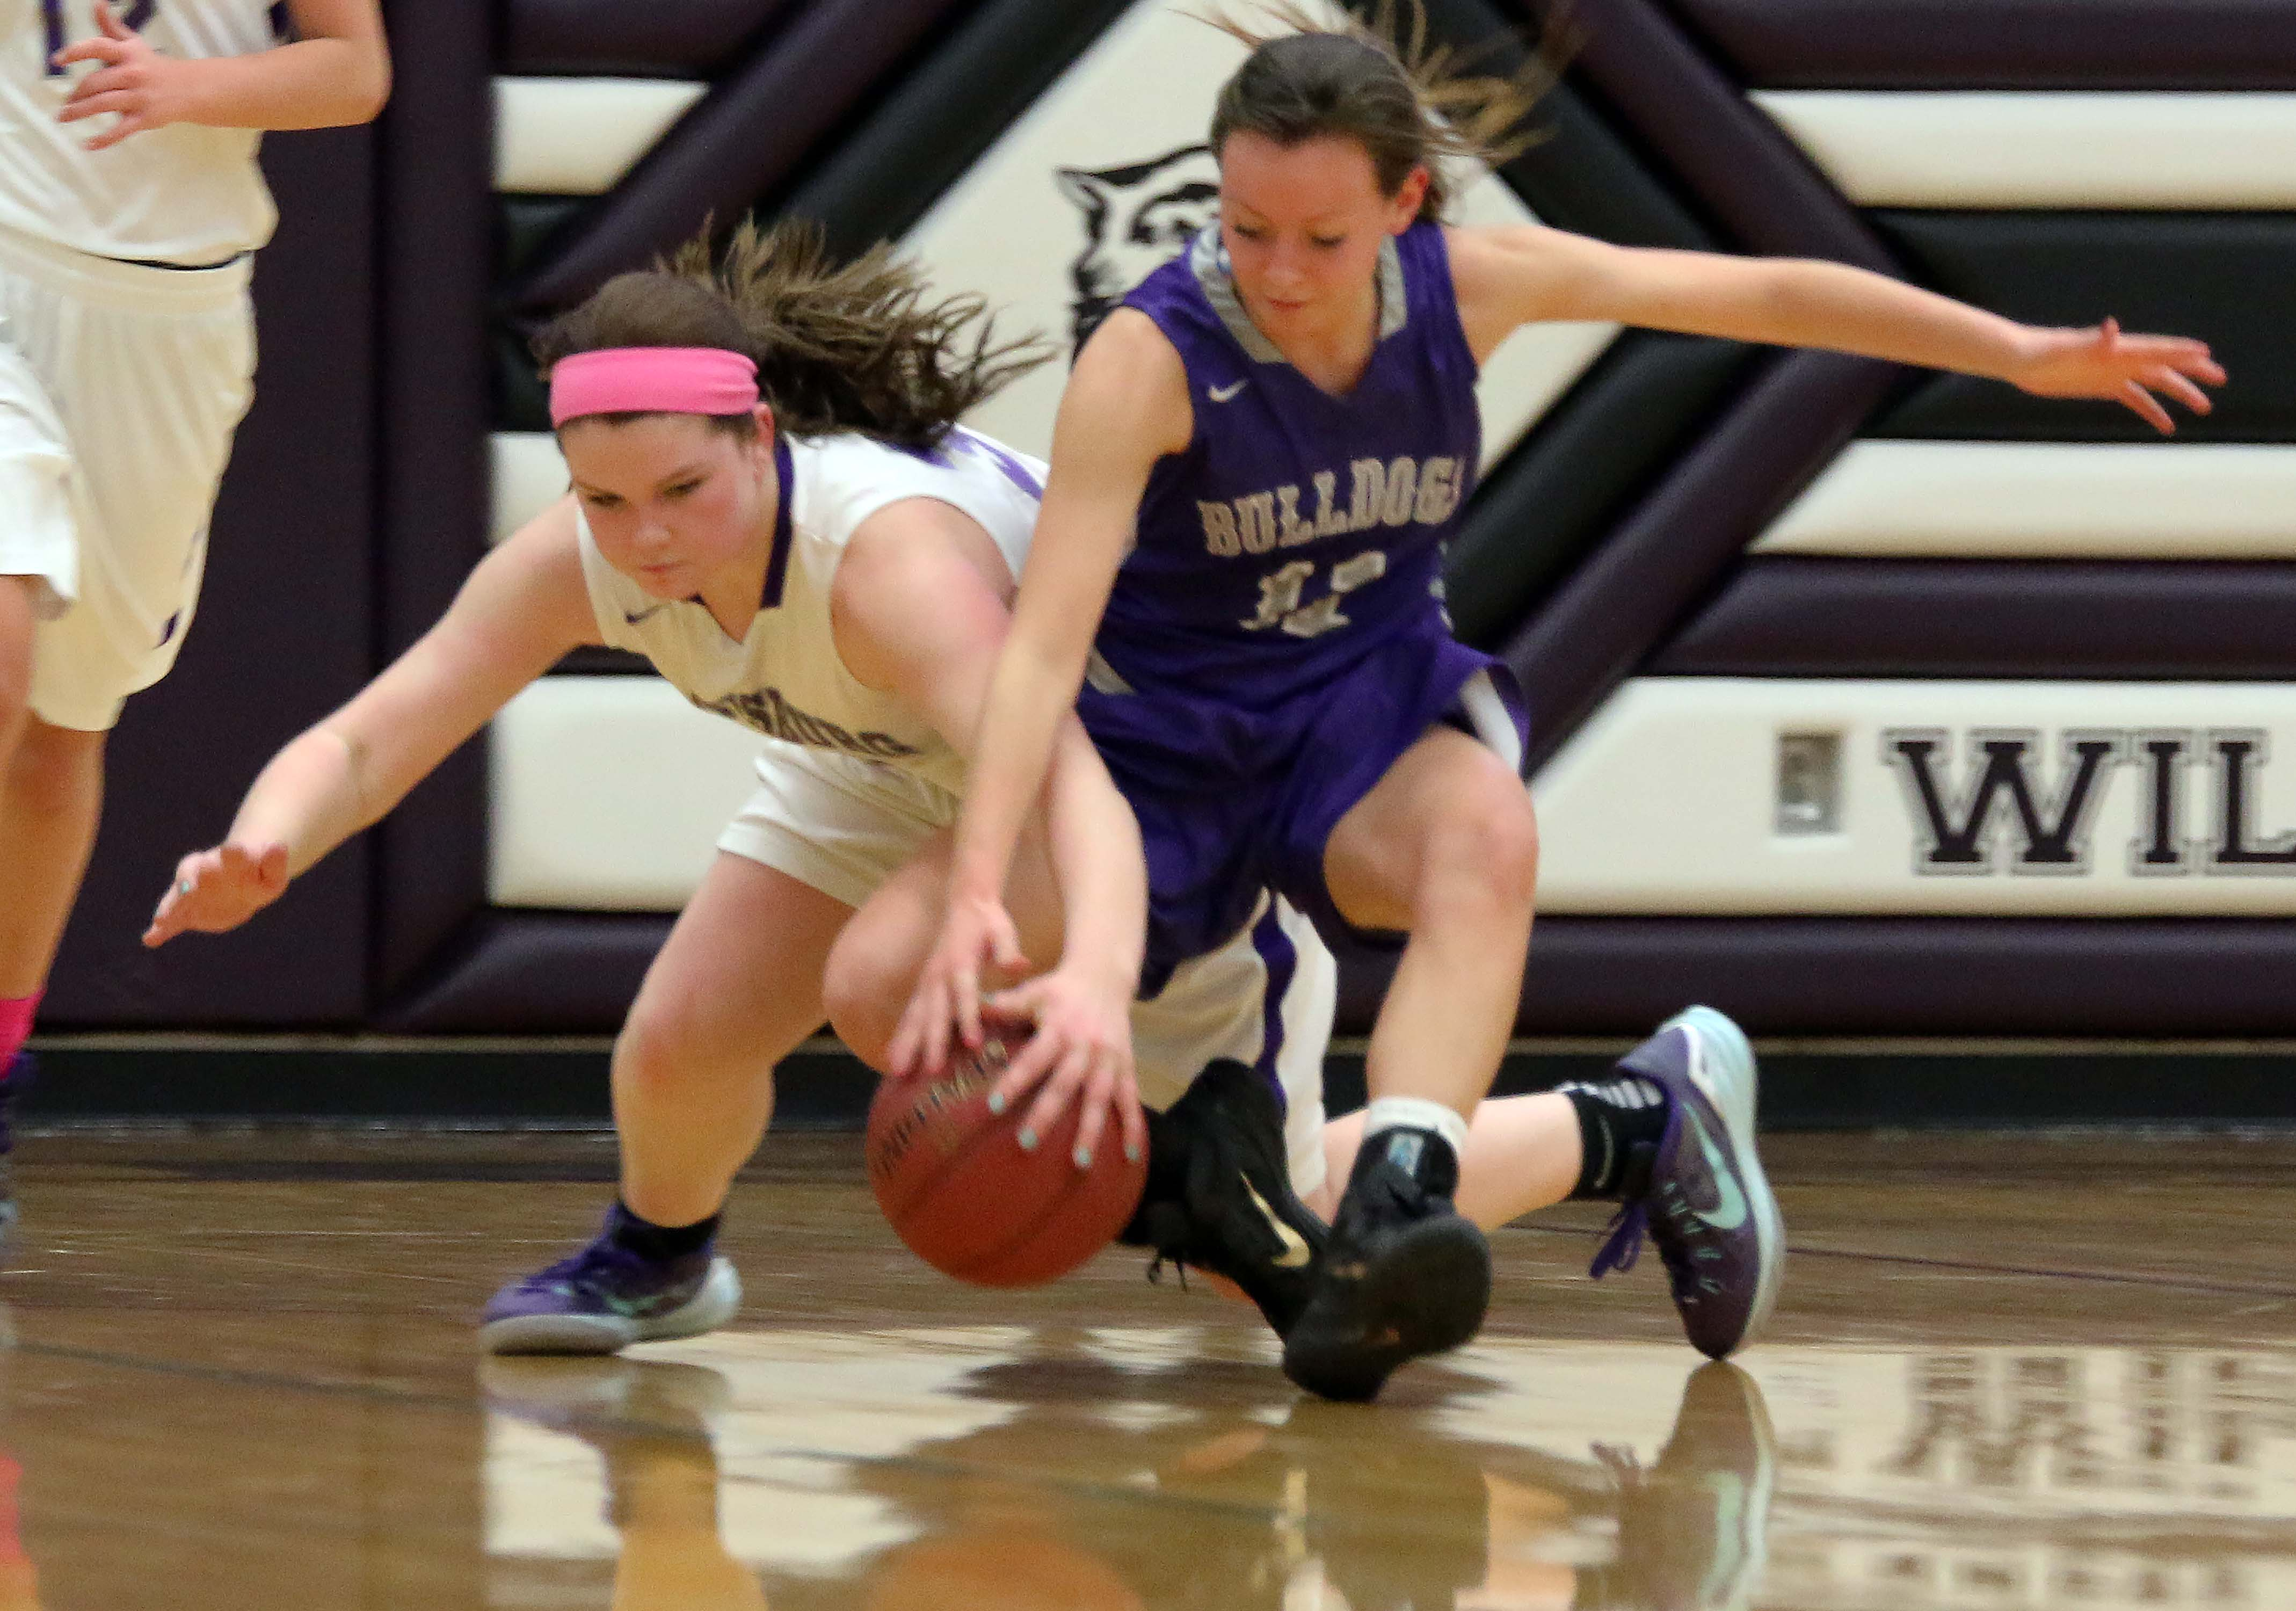 Louisburg's Kallie O'Keefe (left) dives on the floor for a loose ball Tuesday in Louisburg. O'Keefe finished with seven points and seven rebounds.